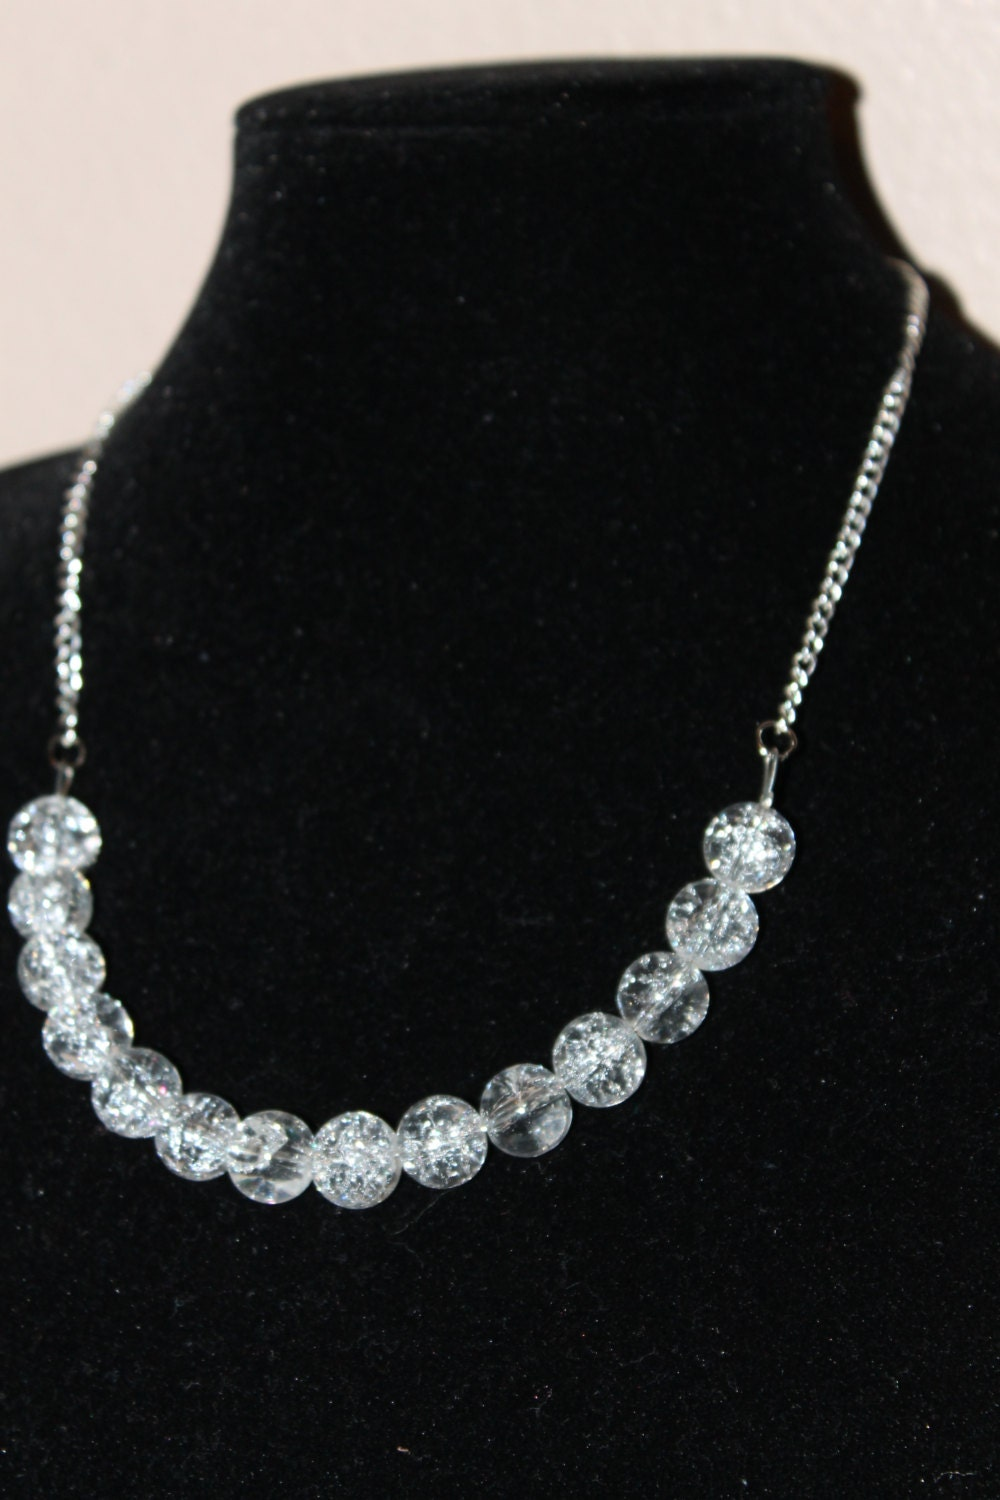 clear bead and chain necklace